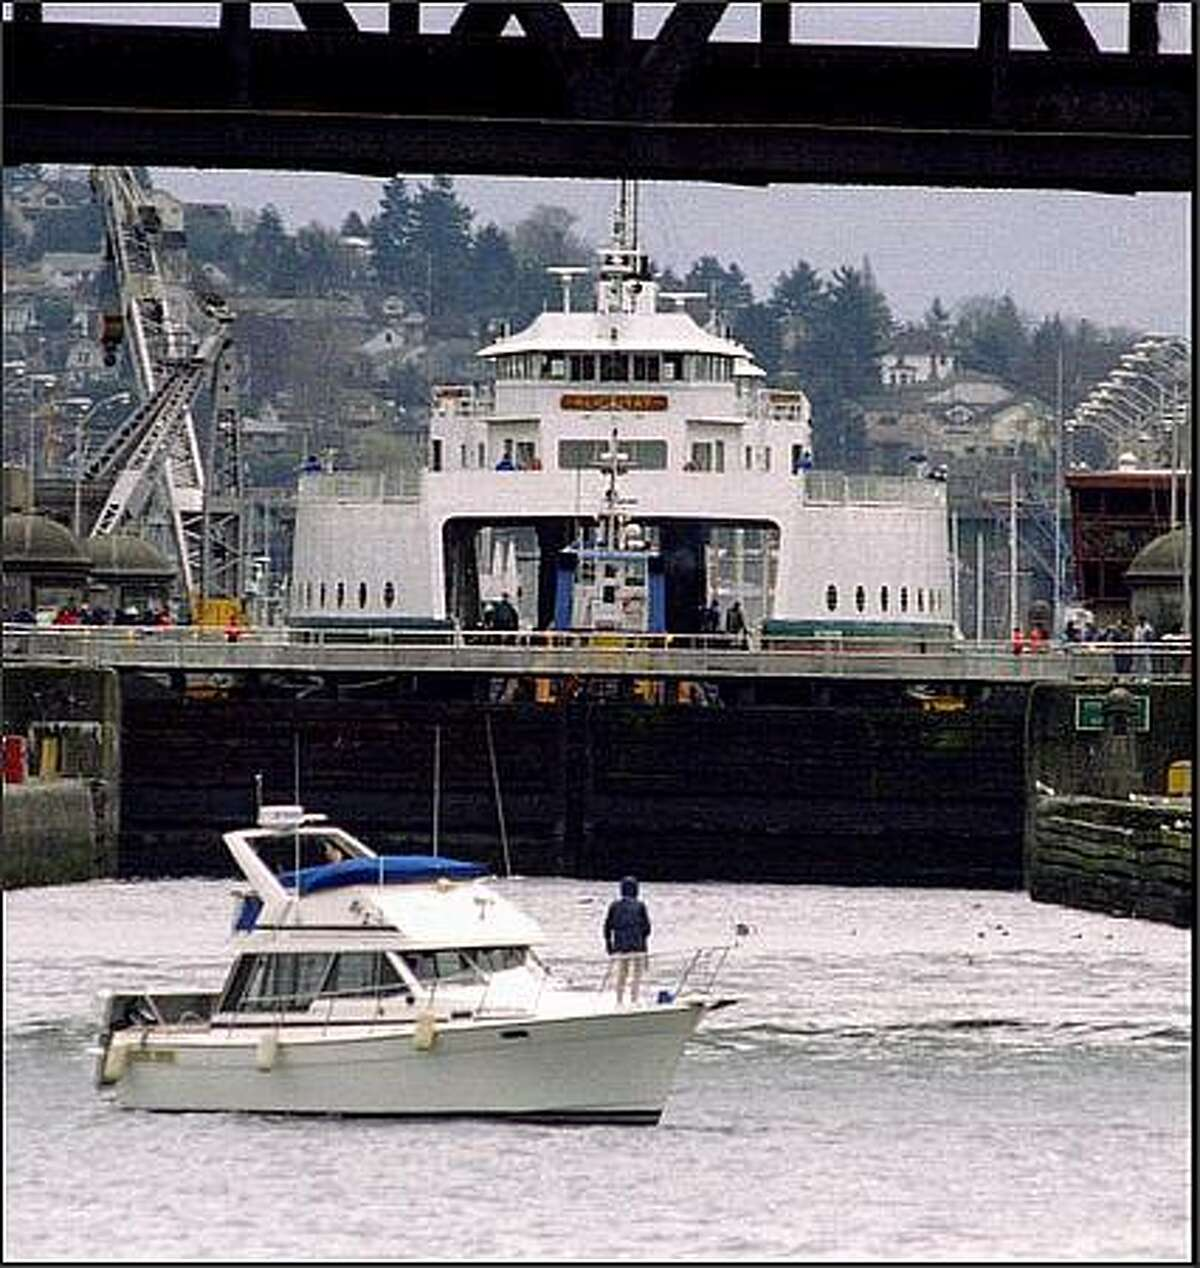 A cruiser waits its turn in the Ballard Locks as the Washington State Ferry Klickitat begins its descent to sea level after undergoing minor repairs in a Lake Union drydock. The ferry was is returning to service on the Port Townsend-Keystone route. The lock is 80 feet across, a tight squeeze. March 5, 1995.